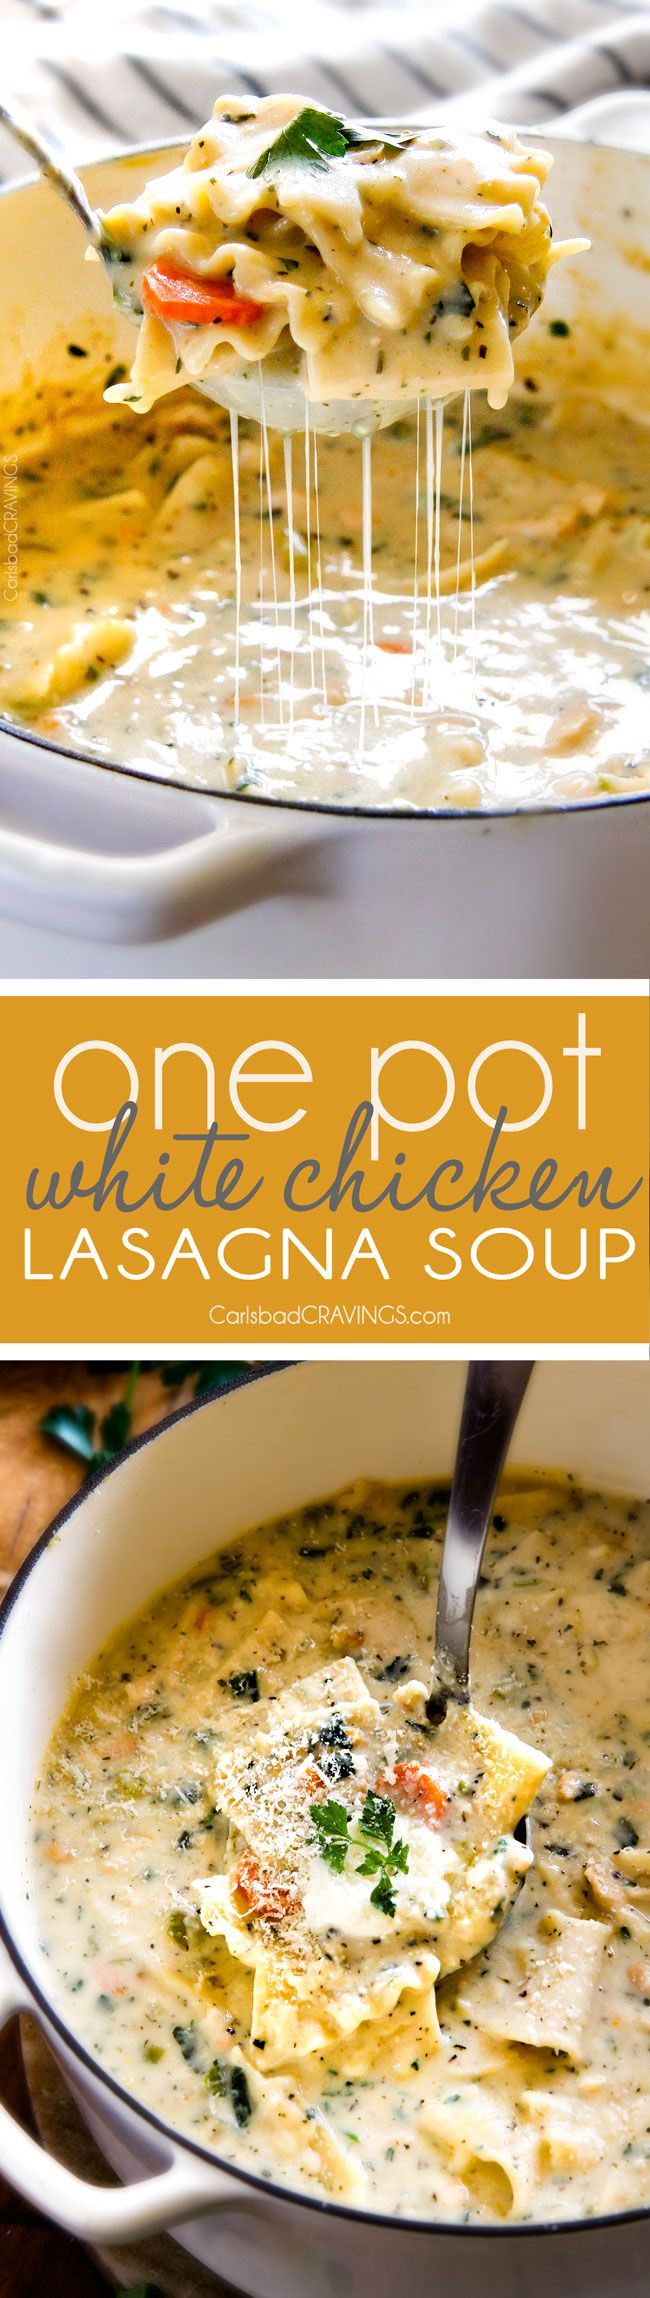 One pot white chicken lasagna soup// just need to do gluten free noodles